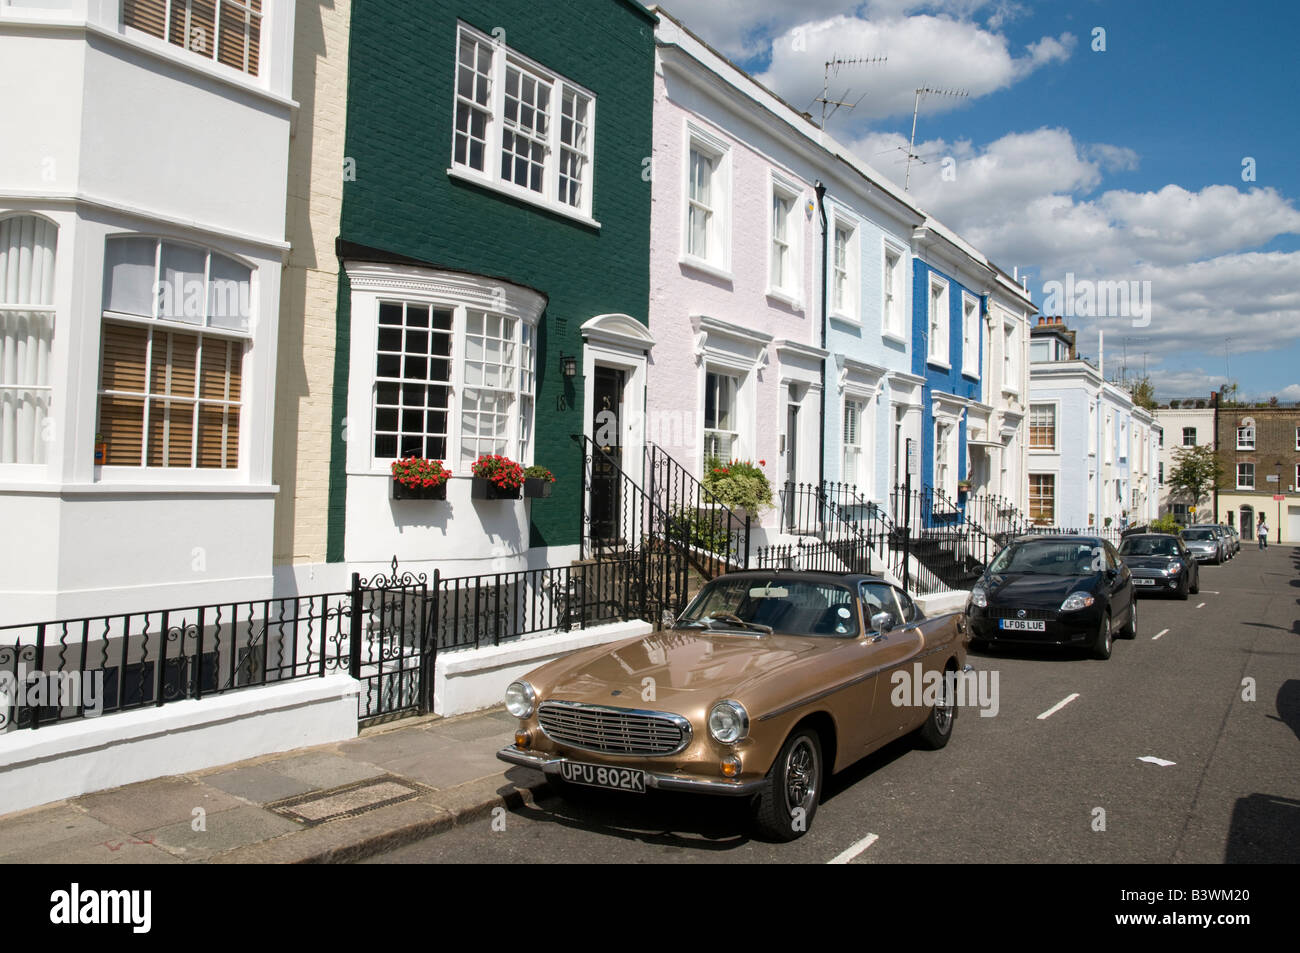 Row of expensive terraced houses in Hillgate Place, a residential street in Notting Hill, London England UK Stock Photo